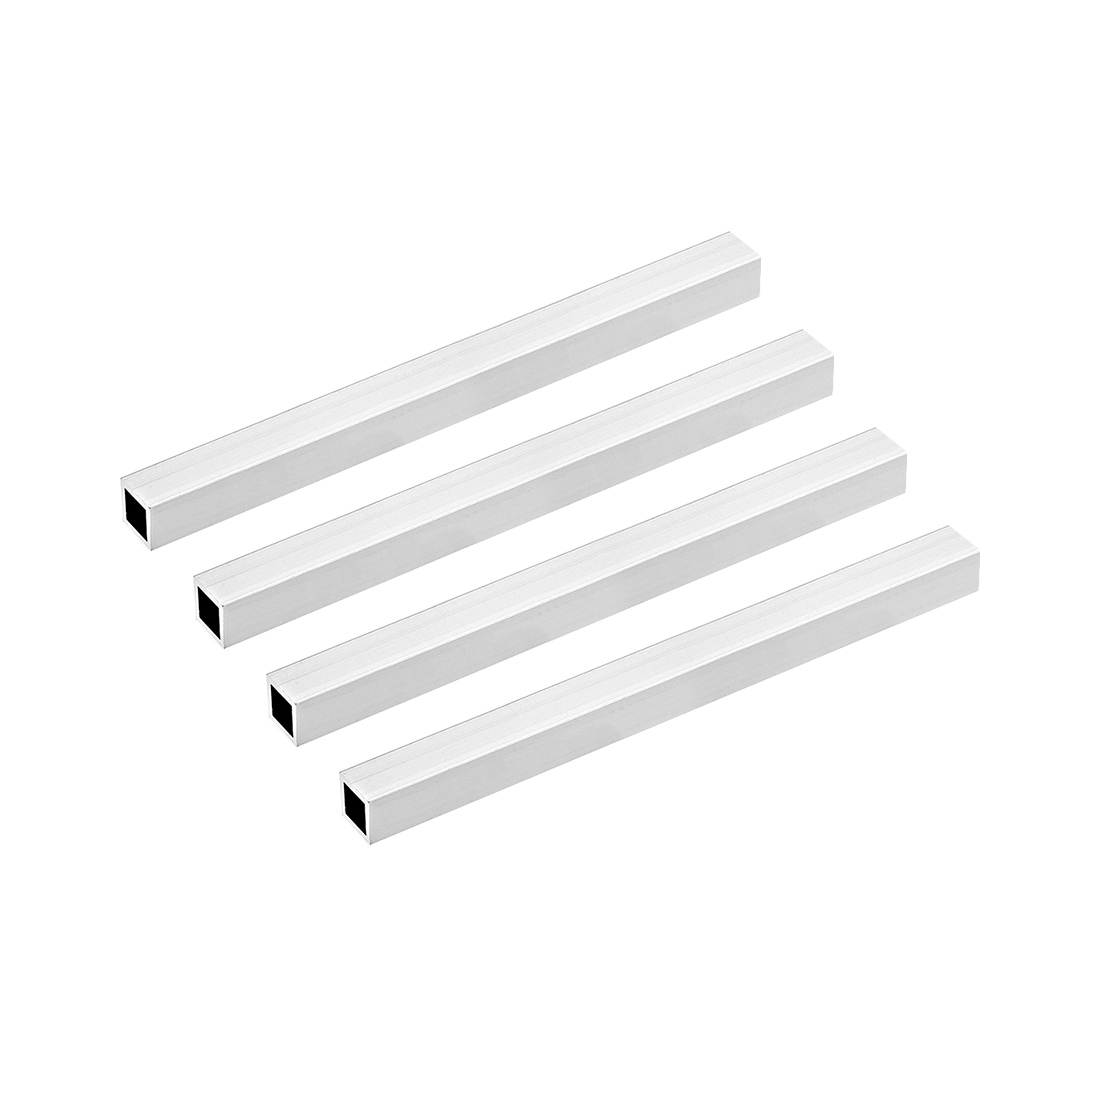 6063 Aluminum Square Tube 15mmx15mmx1mm Wall Thickness 200mm Length Tubing 4 Pcs